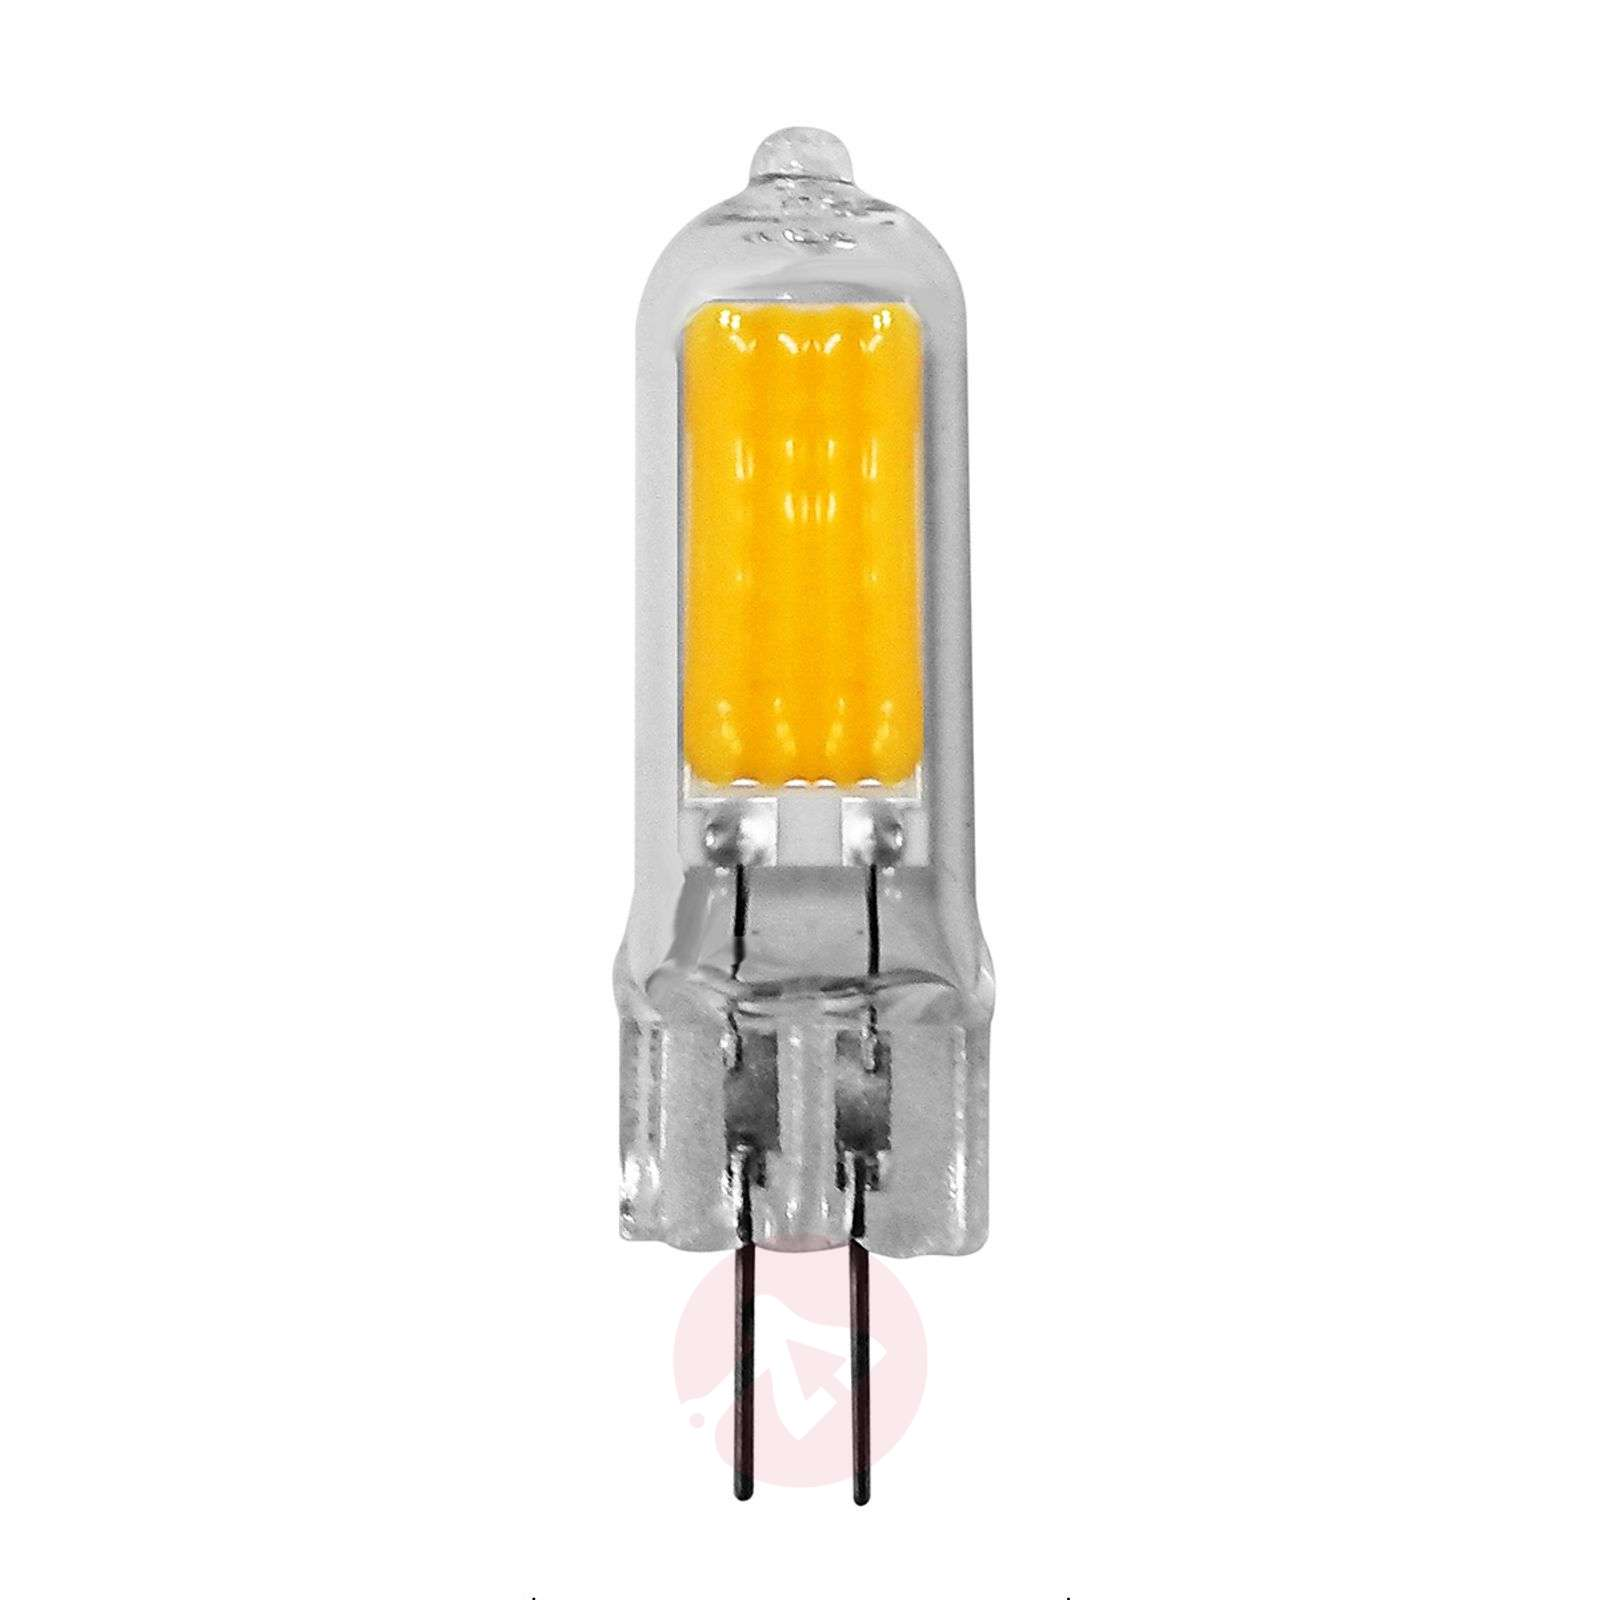 Ampoule à broche LED G4 1,6 W blanc chaud